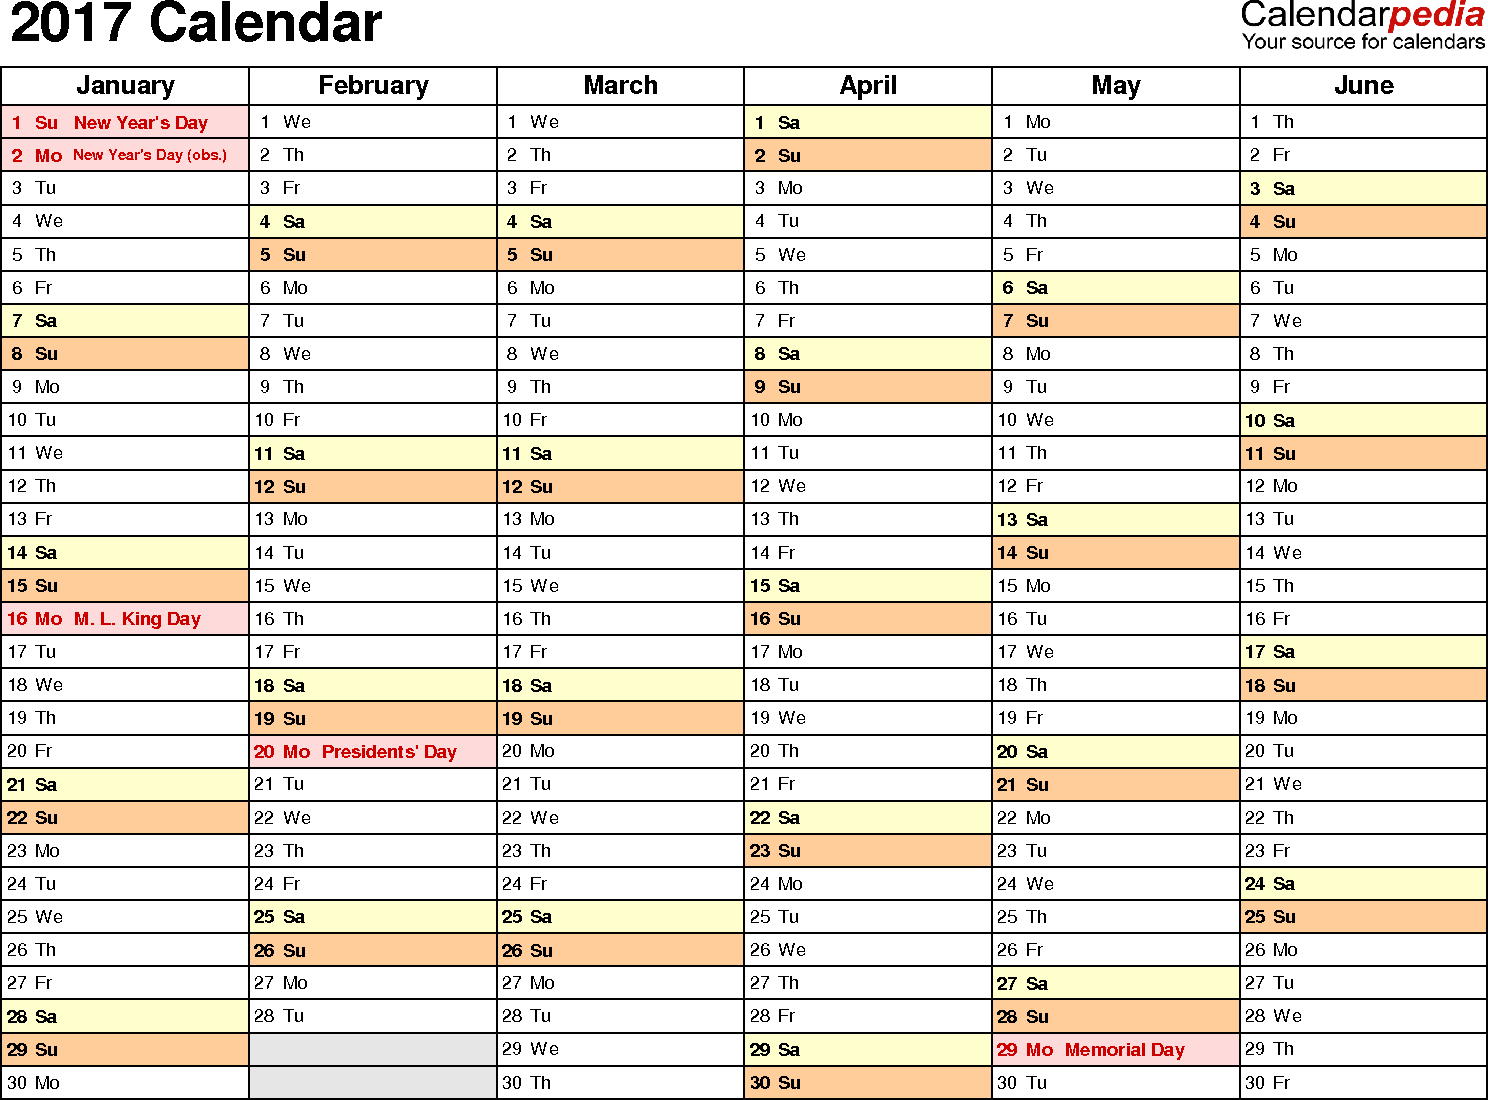 Ediblewildsus  Outstanding  Calendar  Download  Free Printable Excel Templates Xls With Hot Template   Calendar For Excel Months Horizontally  Pages Landscape Orientation With Agreeable Accounting Template Excel Also Excel  Vba Tutorial In Addition Make A Schedule In Excel And Excel Drop Down List From Another Sheet As Well As Comparing Cells In Excel Additionally Split Text Excel From Calendarpediacom With Ediblewildsus  Hot  Calendar  Download  Free Printable Excel Templates Xls With Agreeable Template   Calendar For Excel Months Horizontally  Pages Landscape Orientation And Outstanding Accounting Template Excel Also Excel  Vba Tutorial In Addition Make A Schedule In Excel From Calendarpediacom